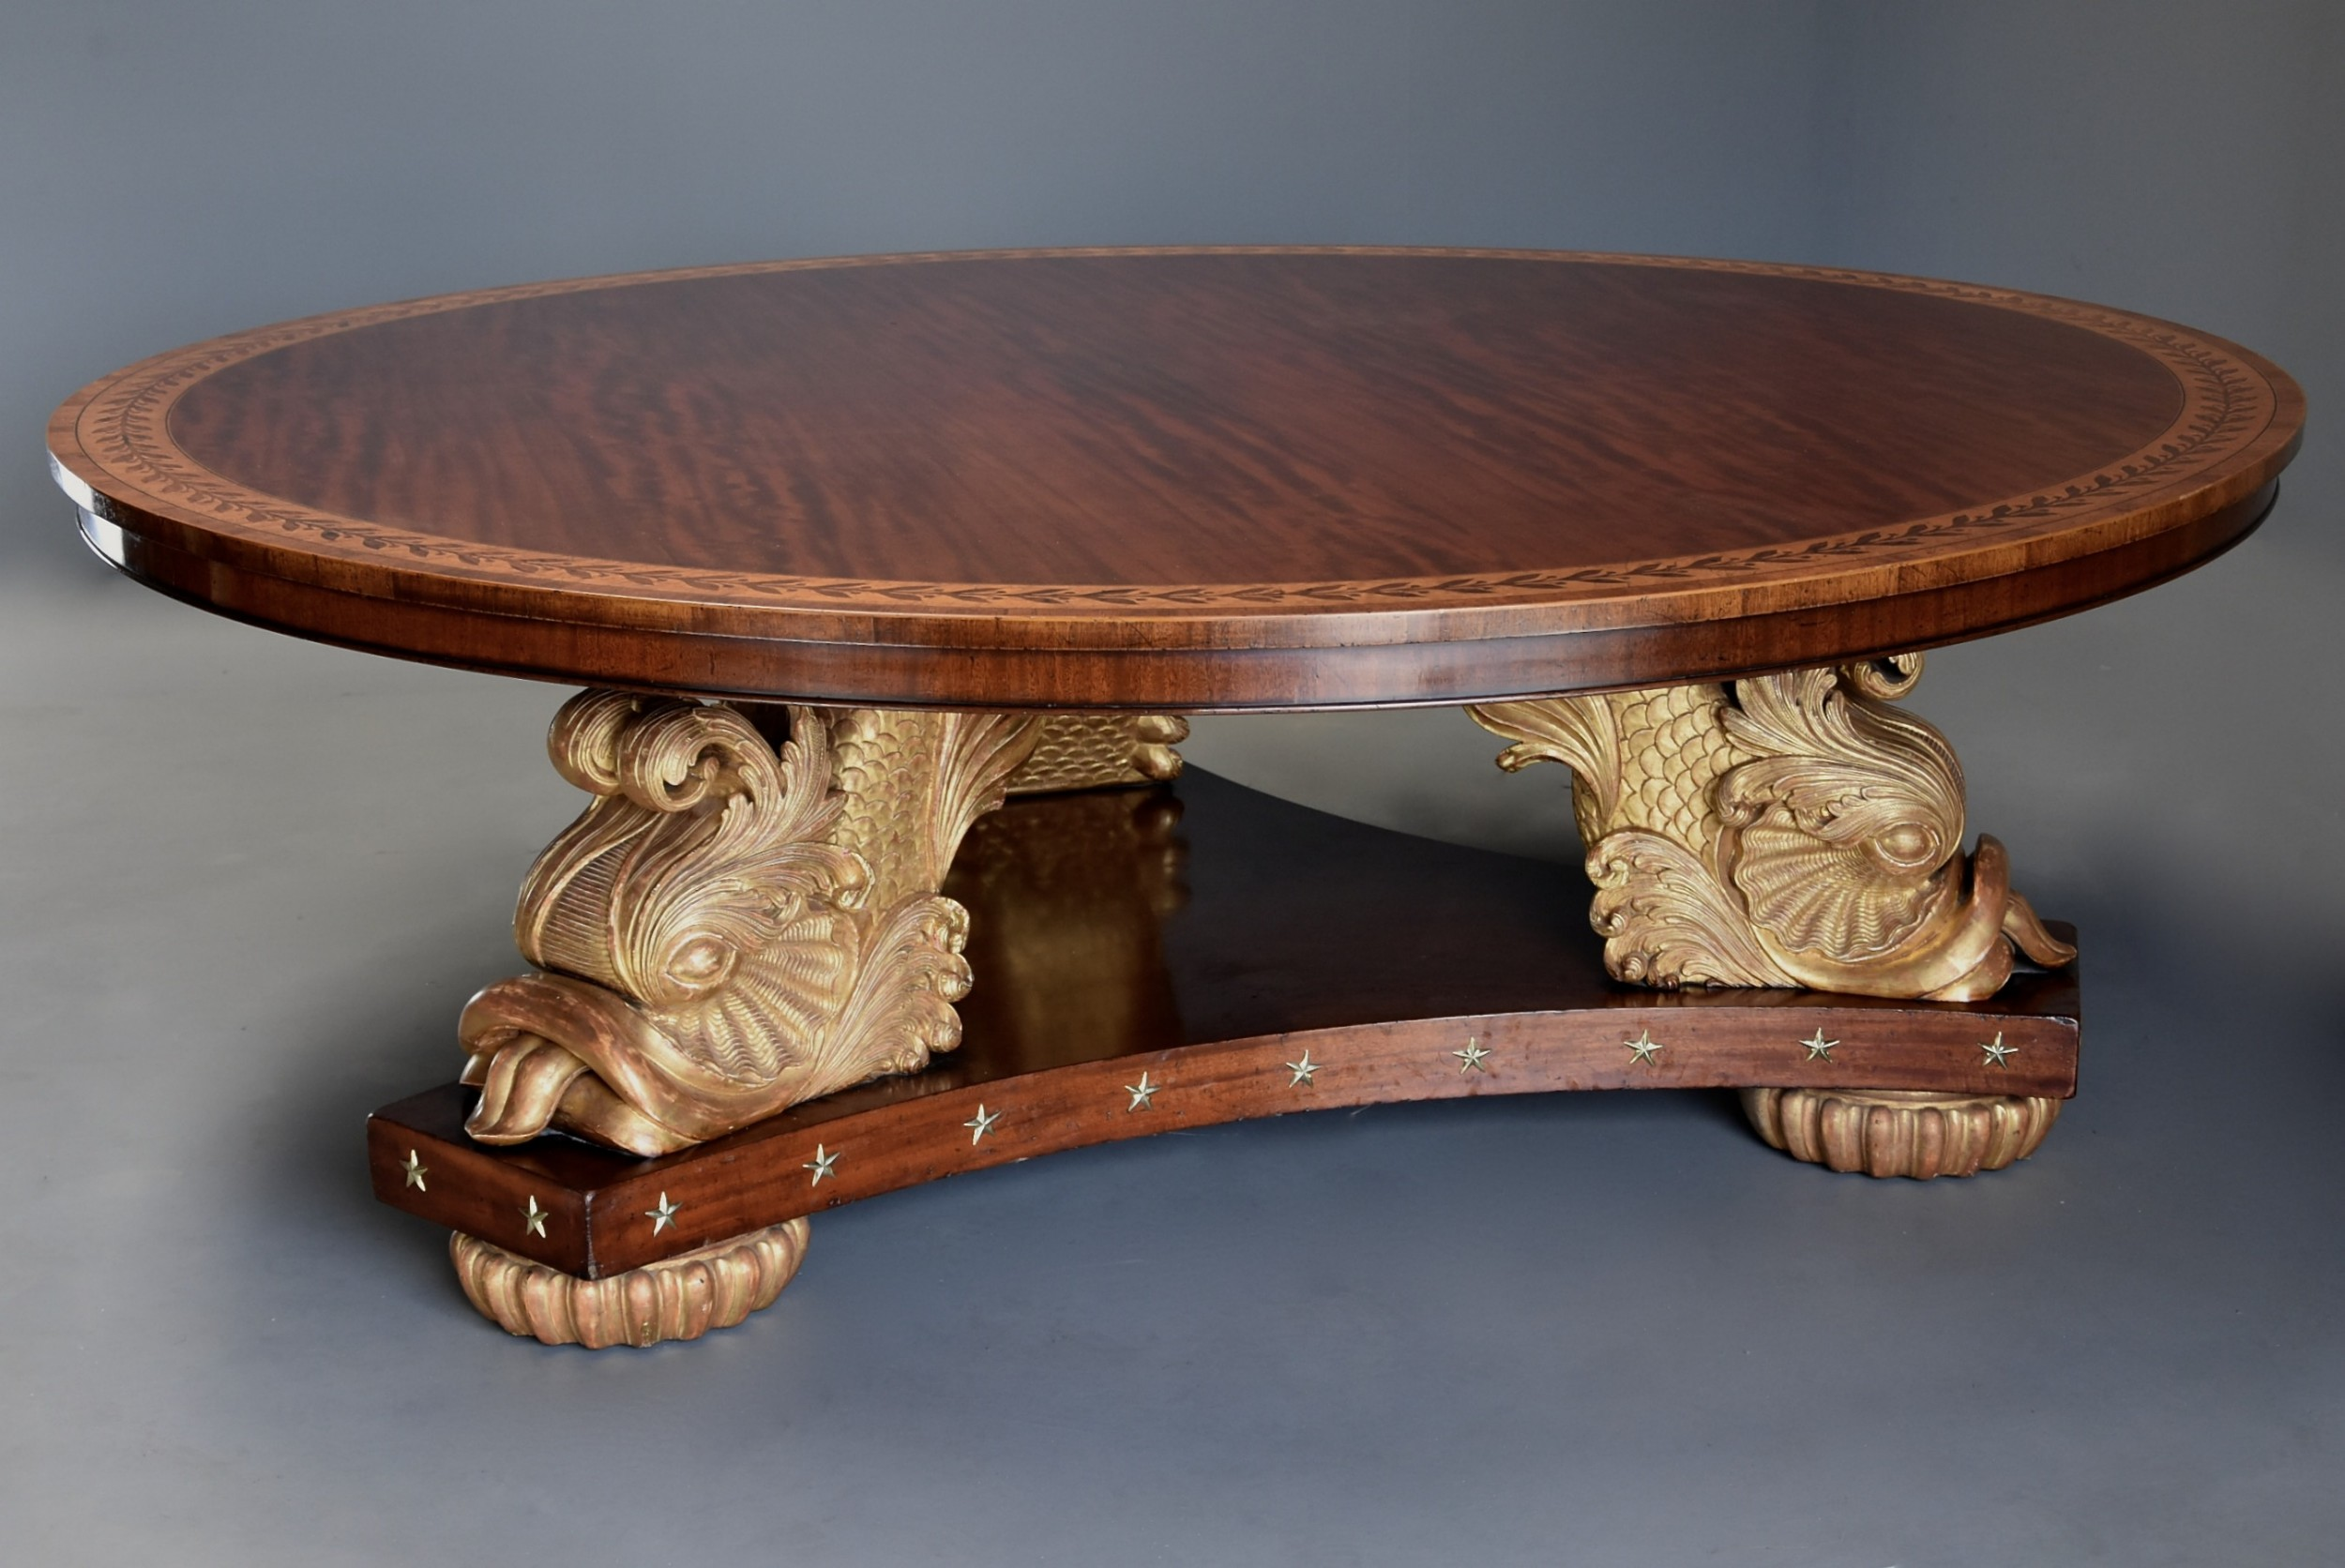 stunning extremely large rare superb quality early 20thc regency style centre table